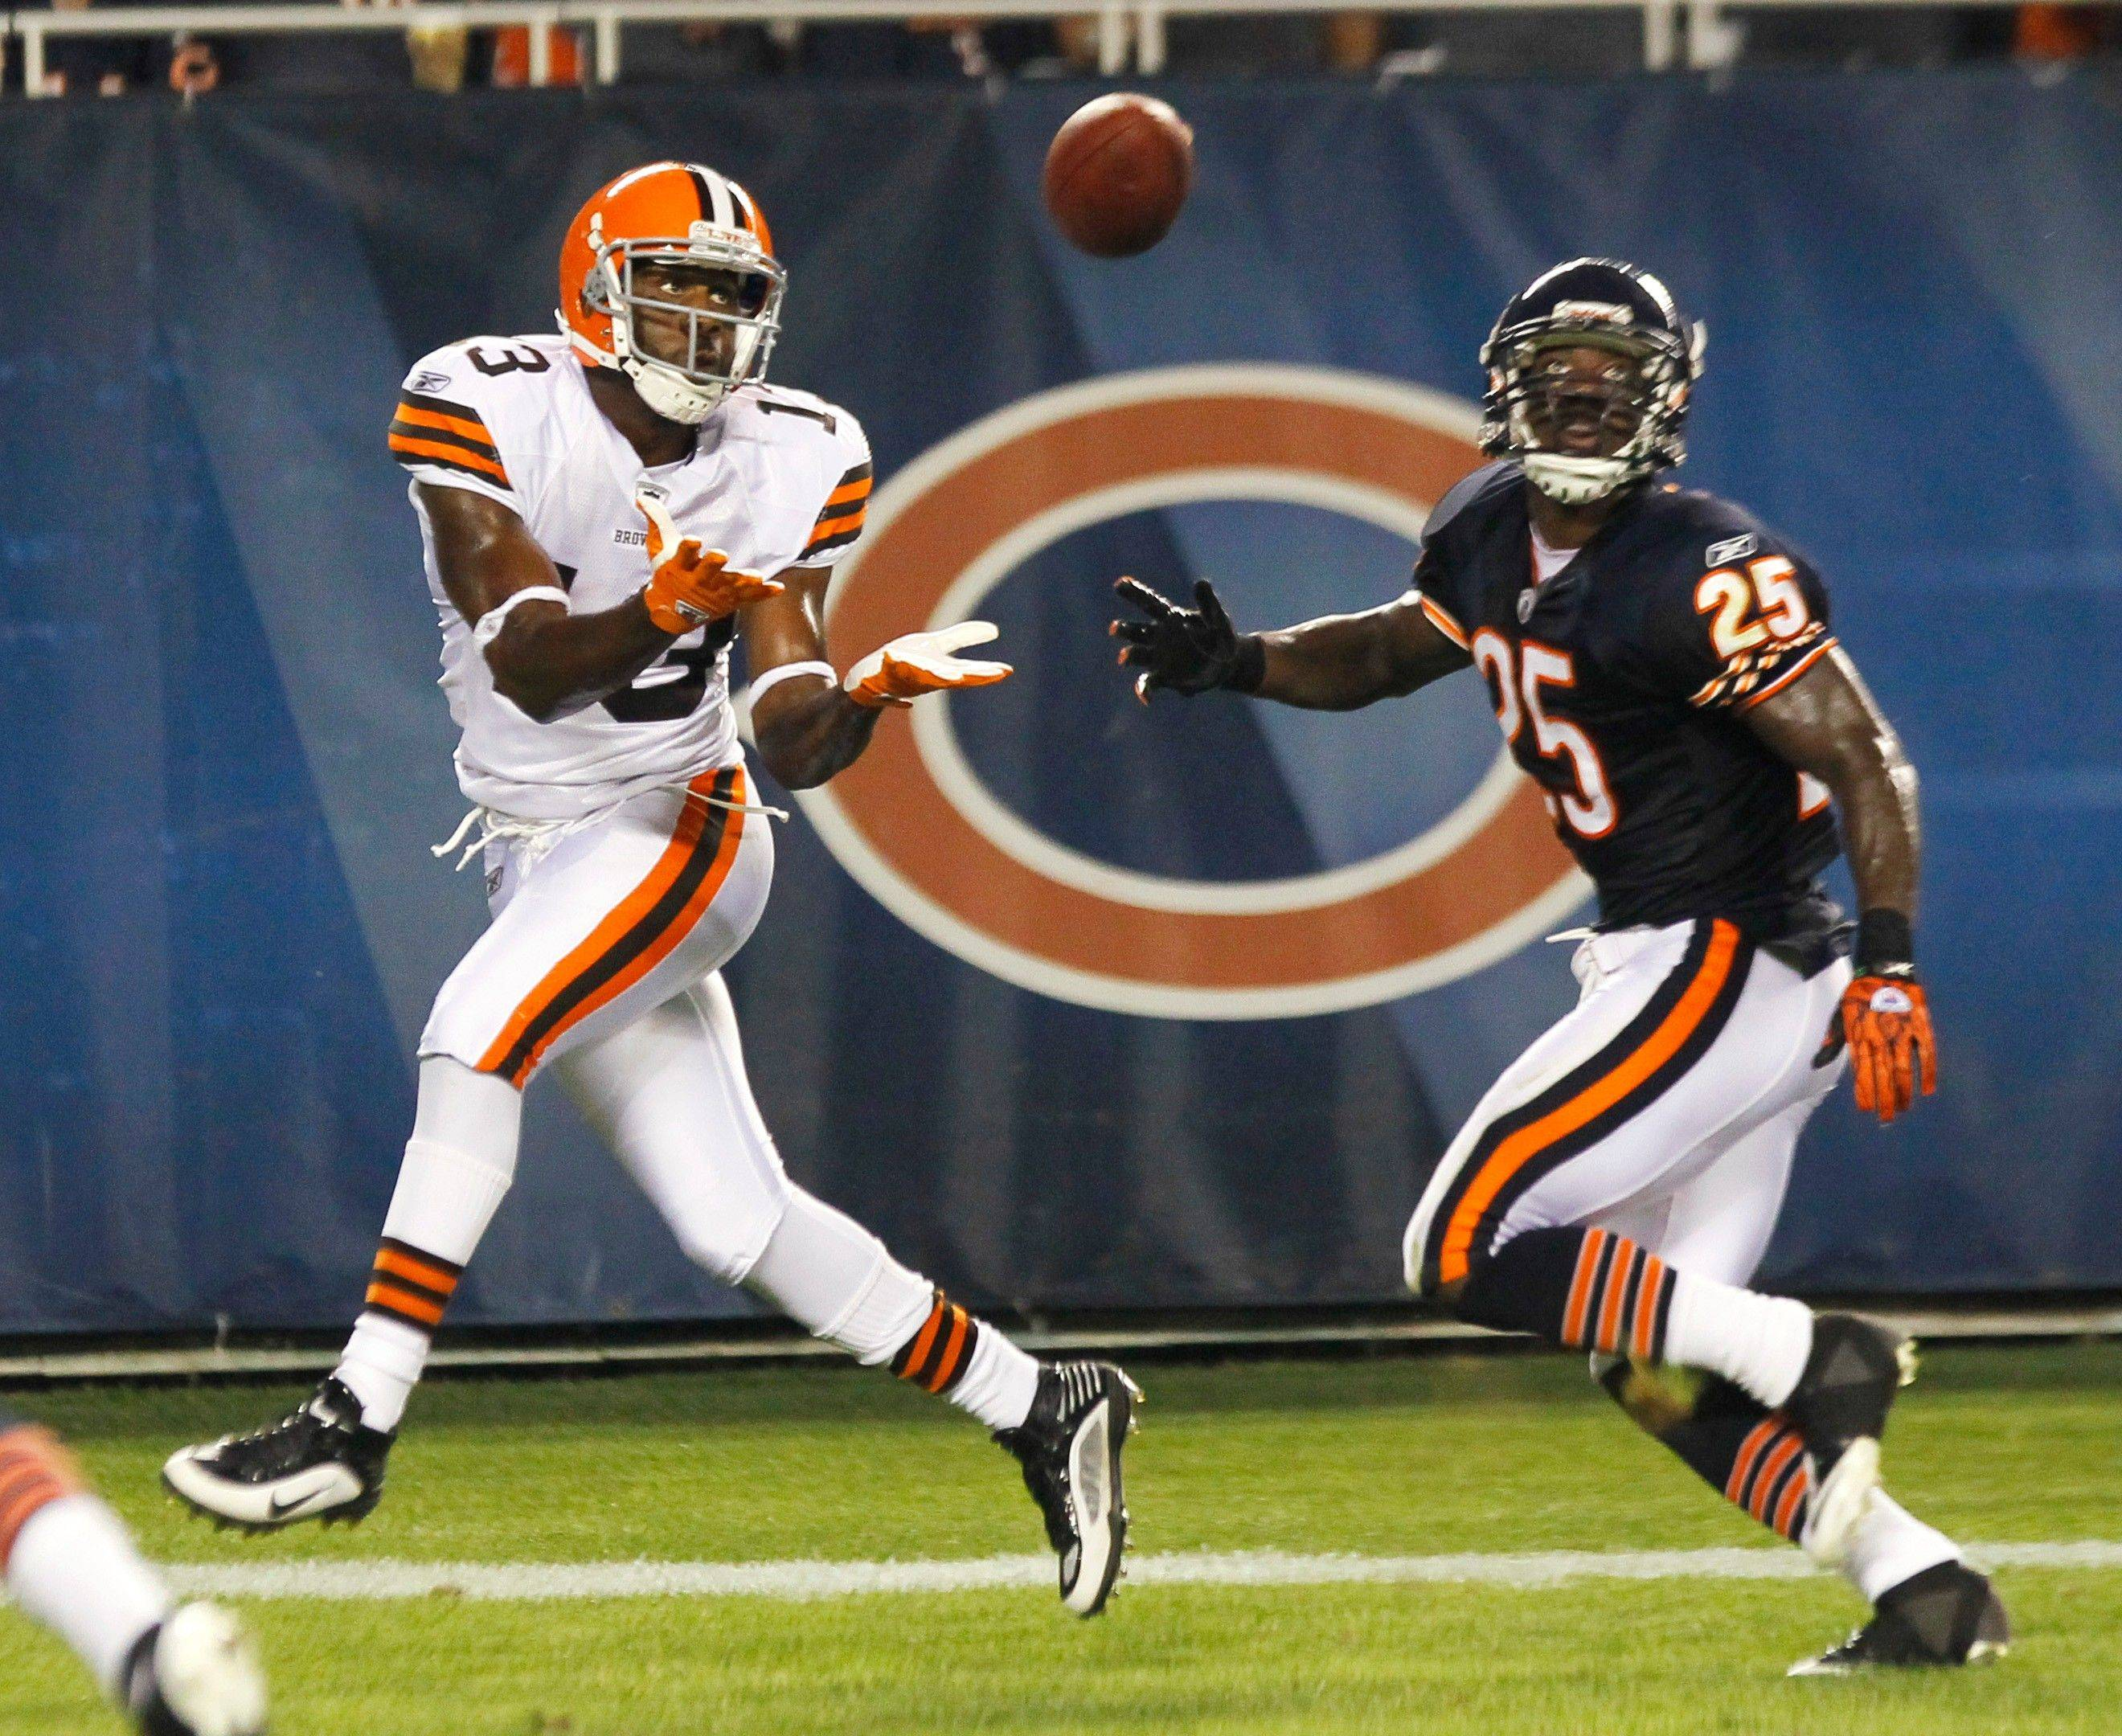 Cleveland Browns wide receiver Rod Windsor makes a touchdown catch against Chicago Bears cornerback Ryan Jones.